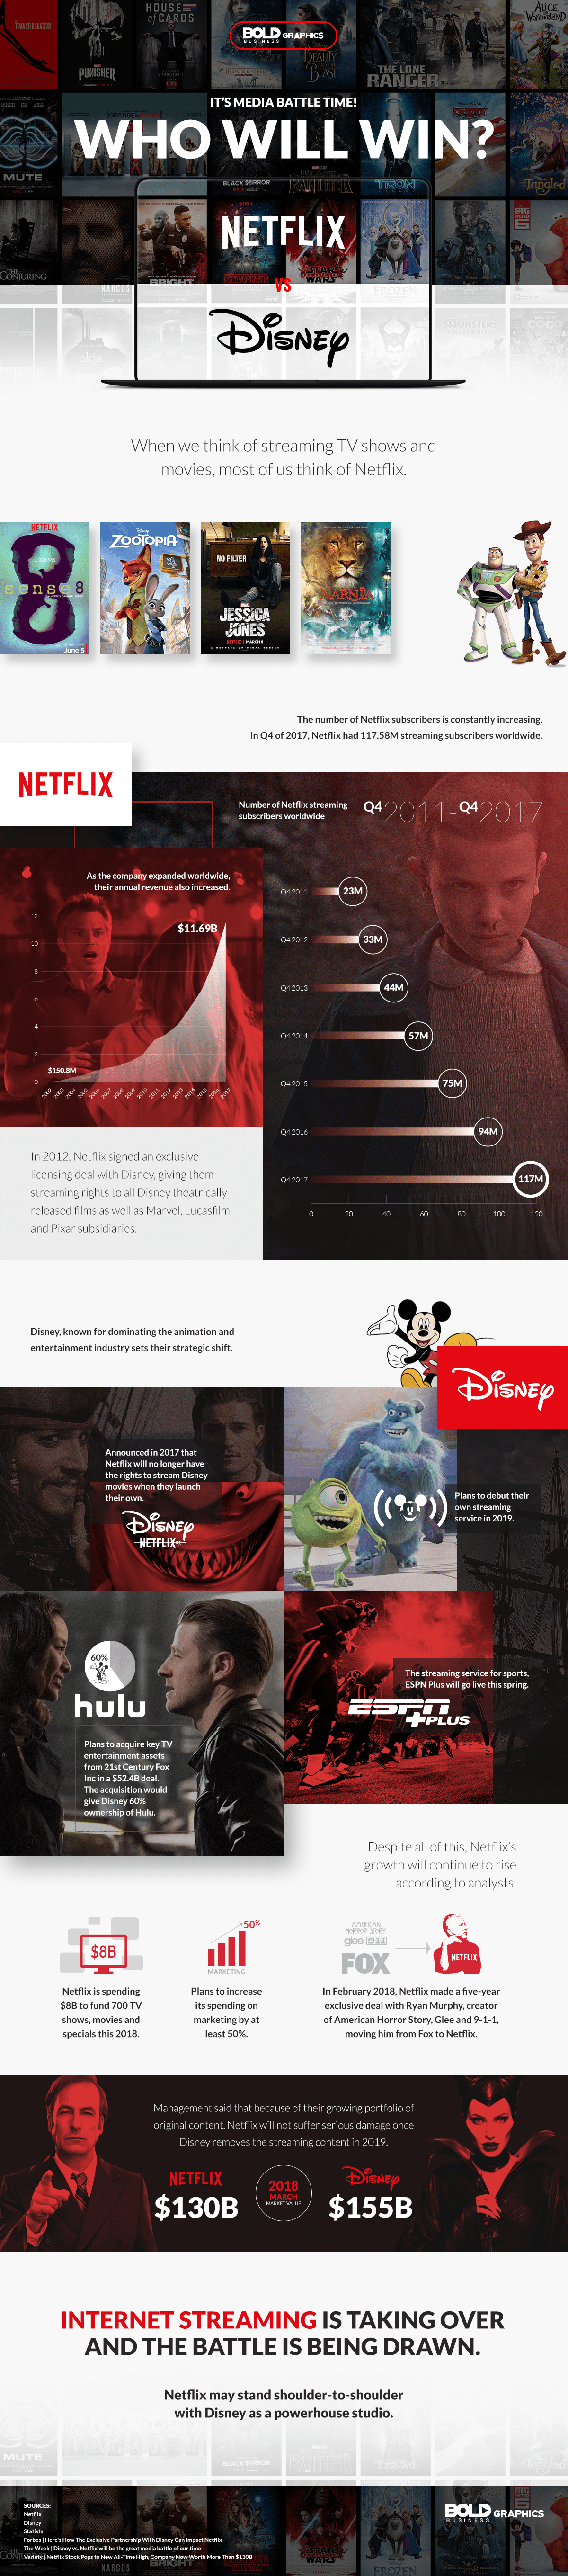 netflix vs disney infographic,disney acquisitions,disney deals,disney hulu,disney marvel movies,netflix revenue,best on netflix,go to netflix,disney market value,netflix market value